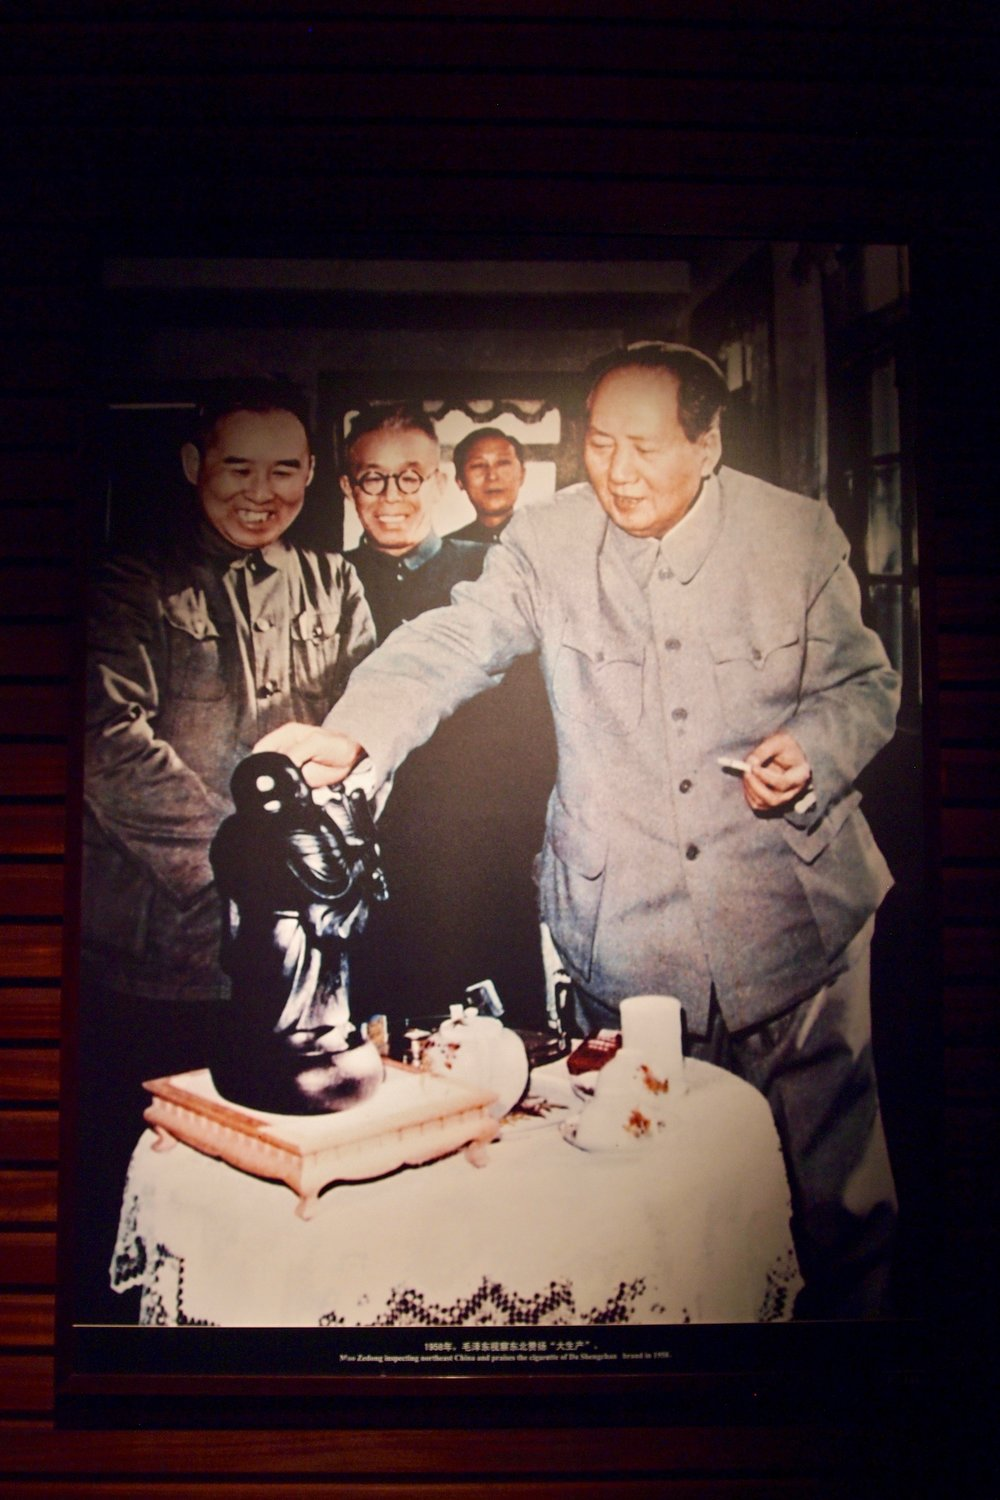 Photo of Mao Zedong, first leader of the People's Republic of China, smoking.